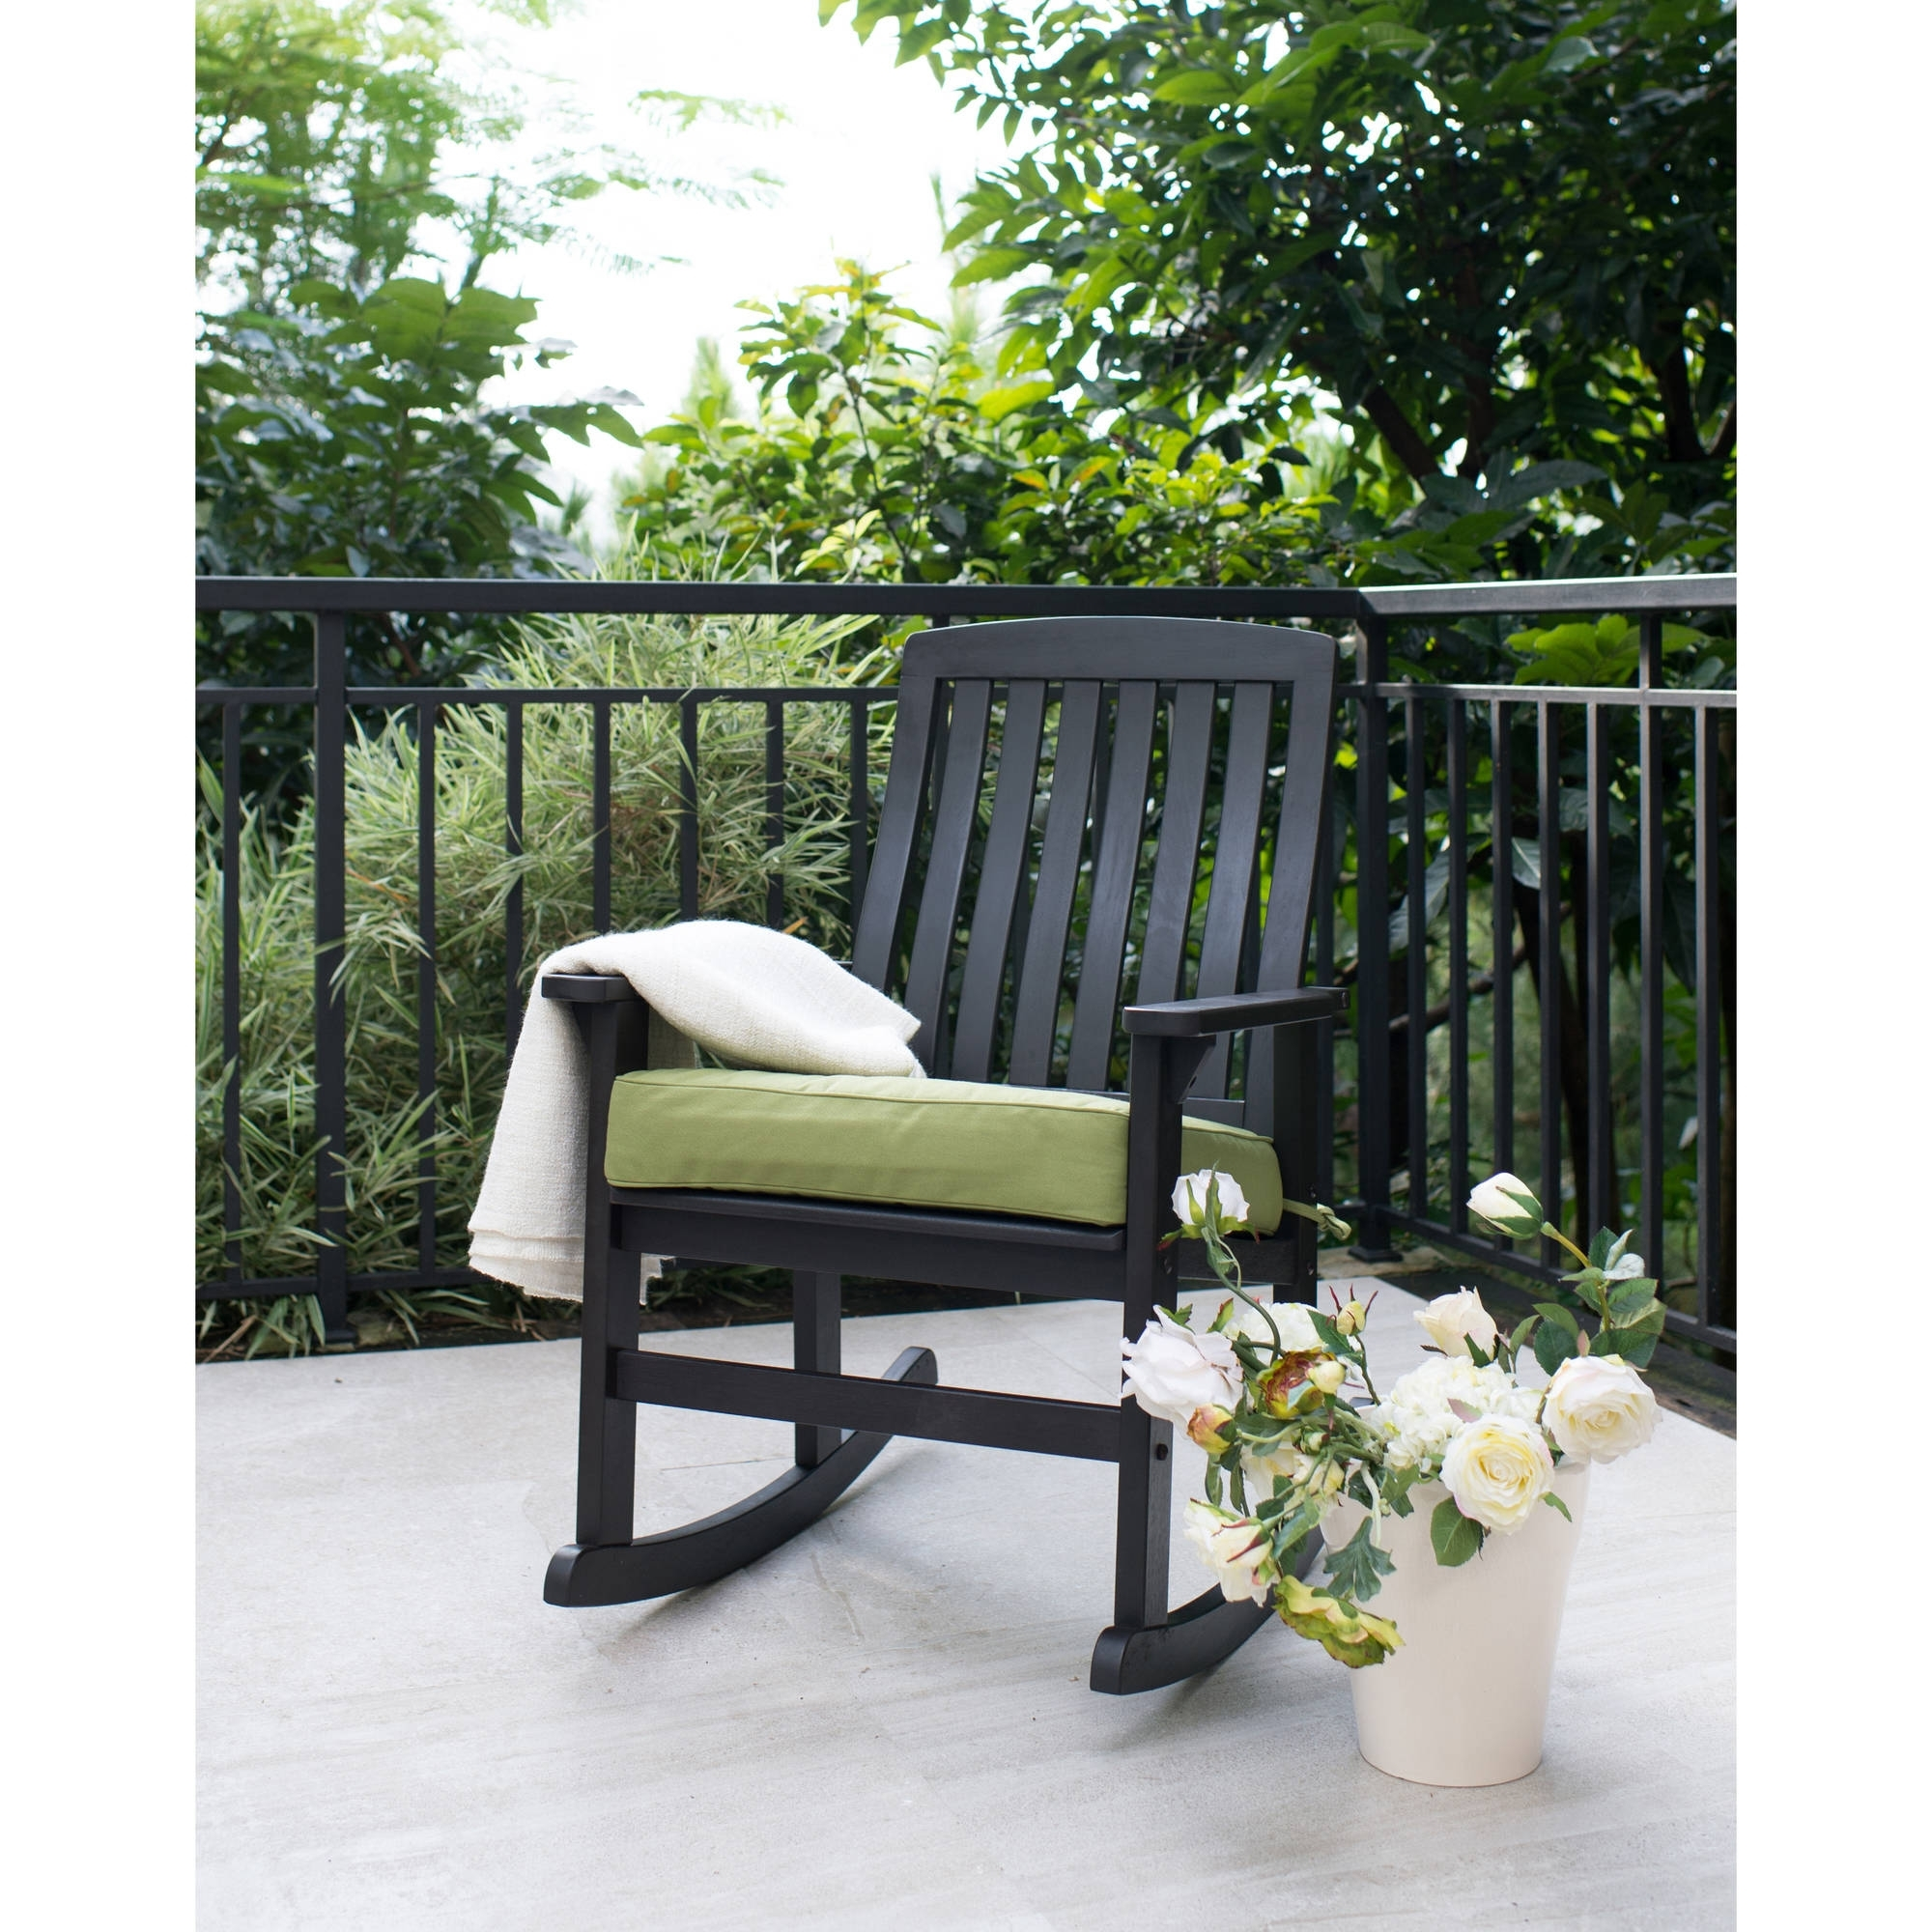 Rocking Chairs At Walmart Regarding Well Liked Better Homes & Gardens Delahey Wood Porch Rocking Chair, Black (View 9 of 15)